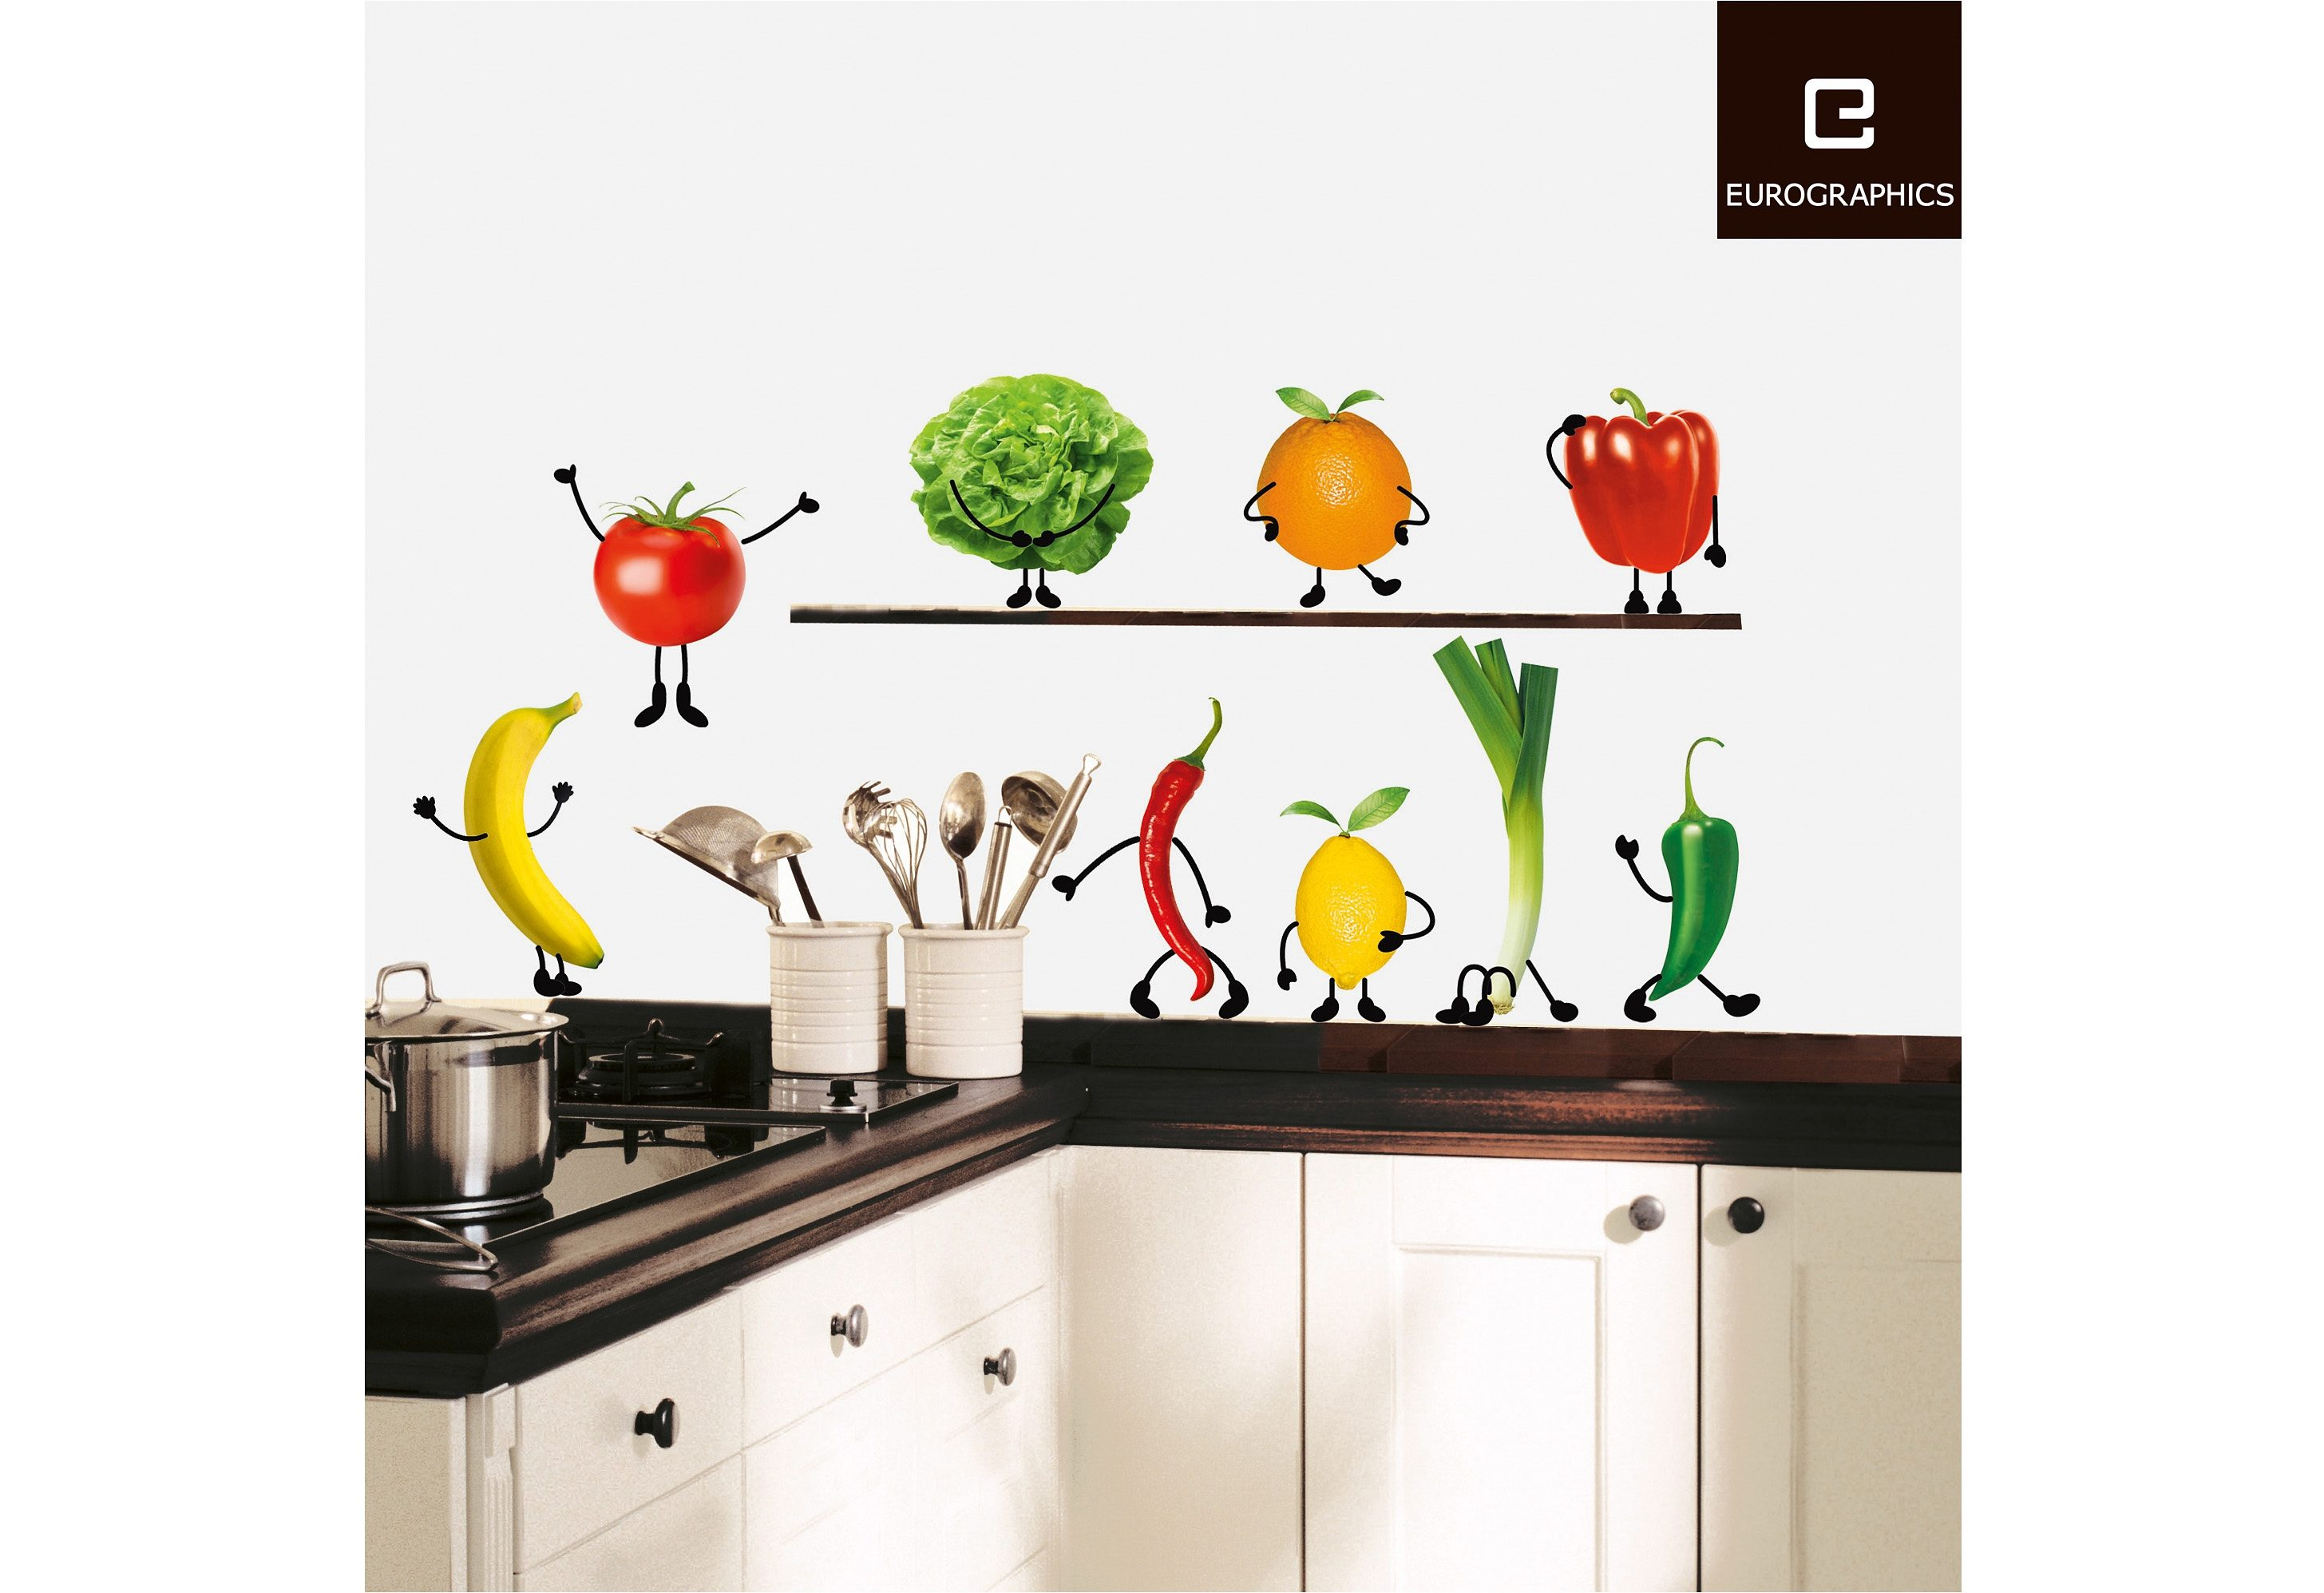 EUROGRAPHICS Deko-Sticker »Crazy Vegetable«